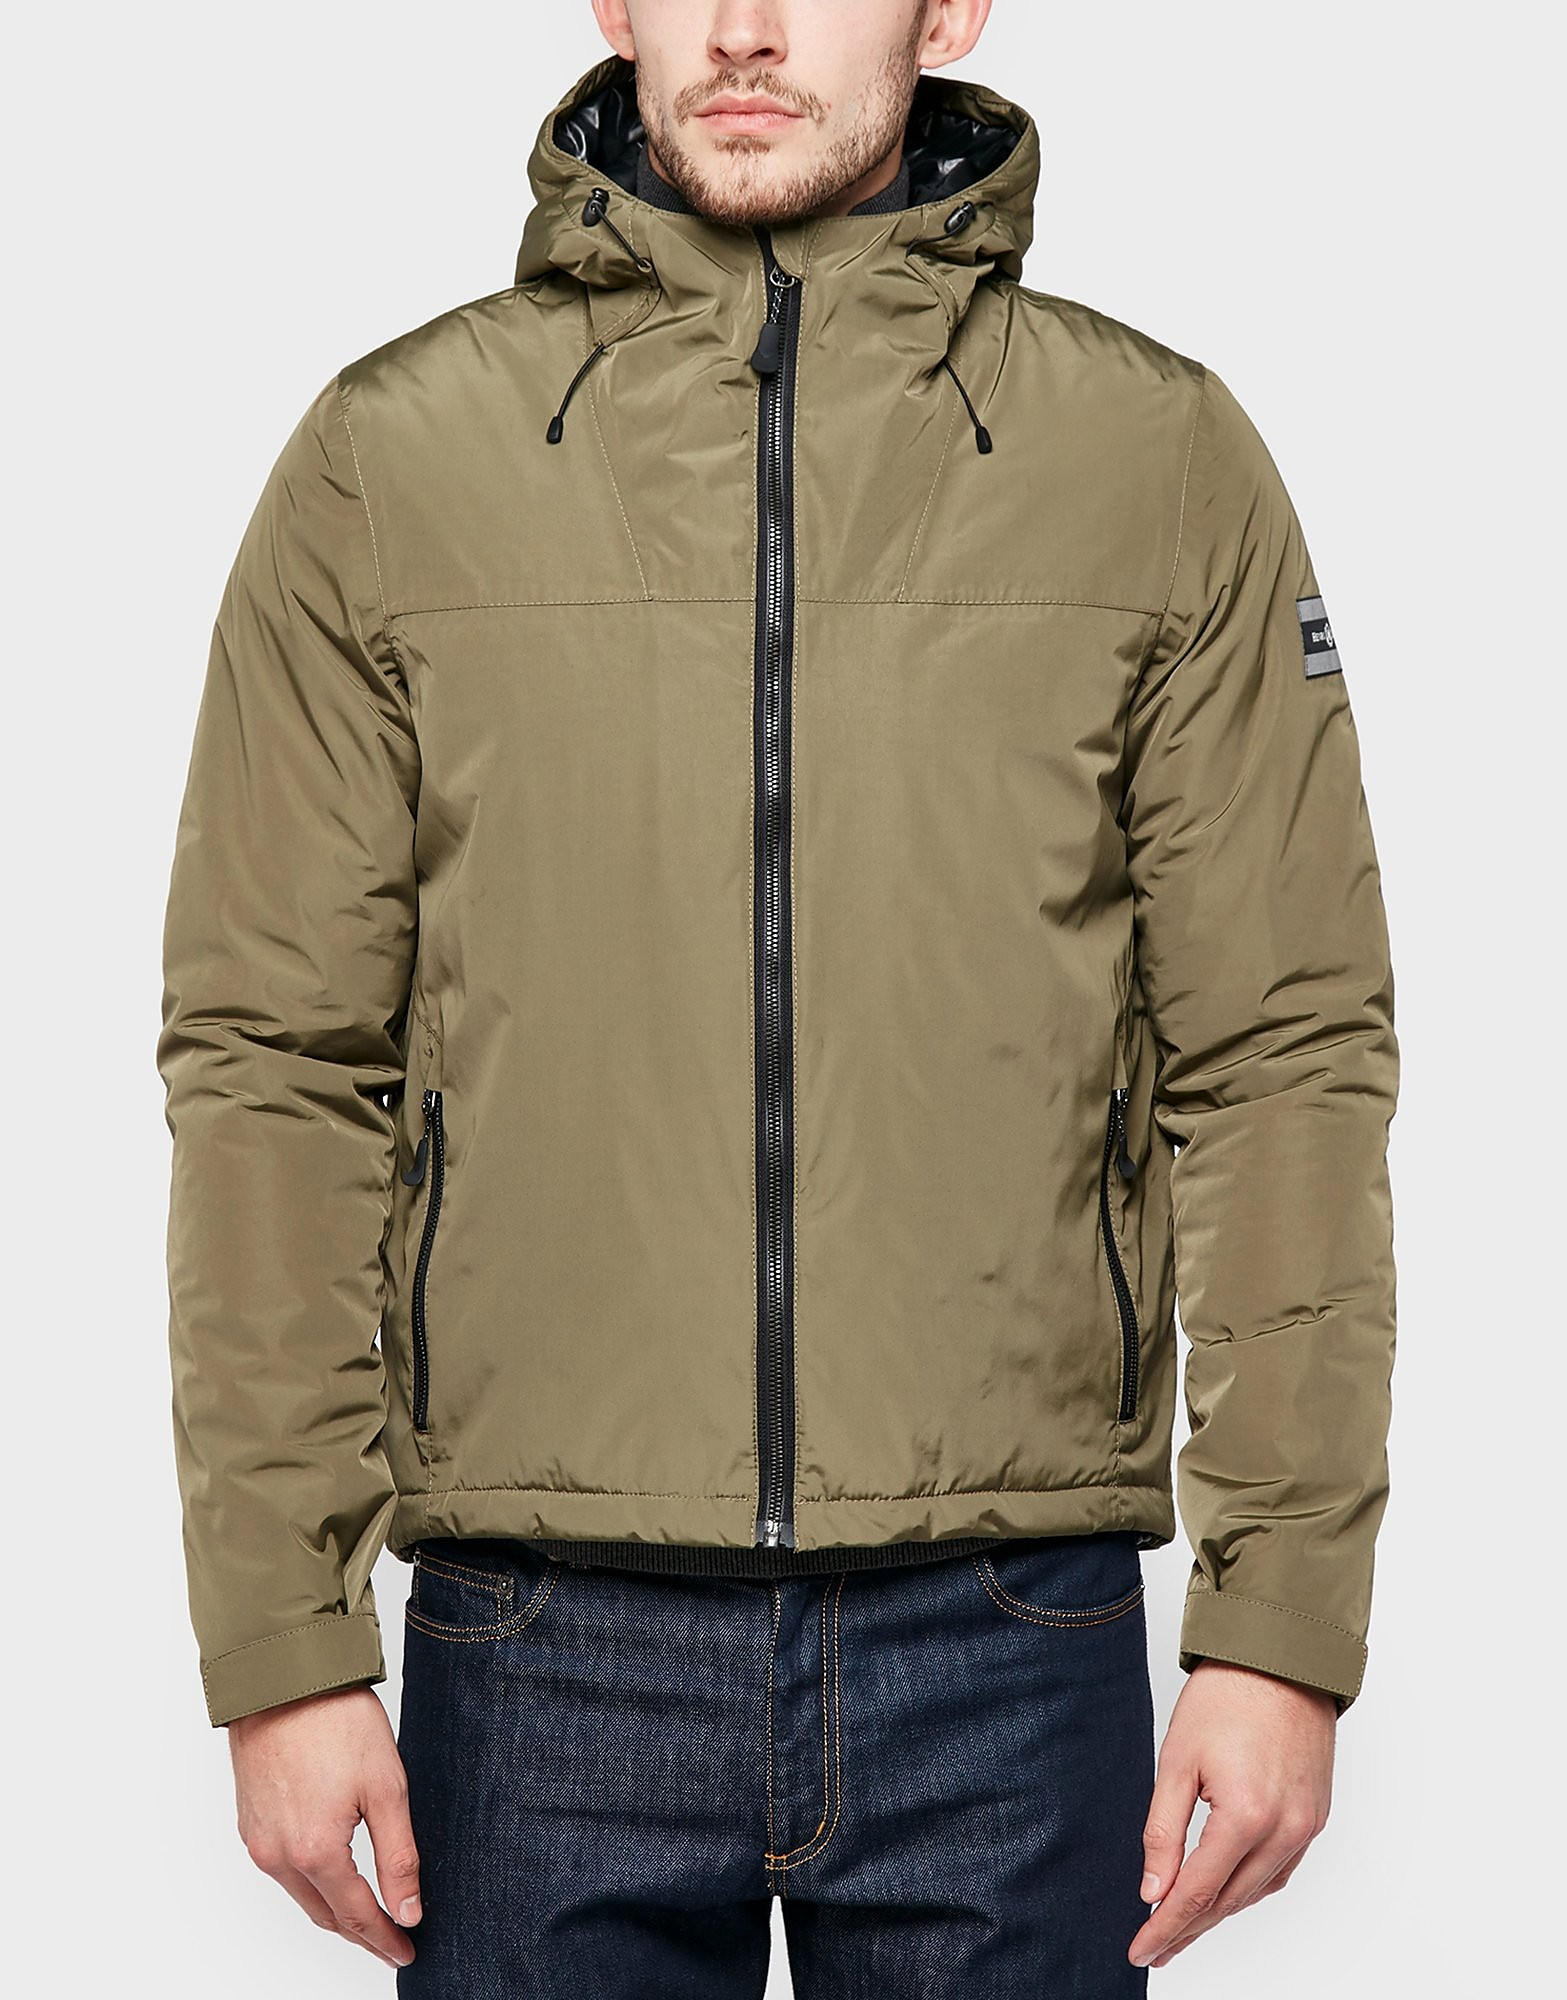 Henri Lloyd Black Label Jacket